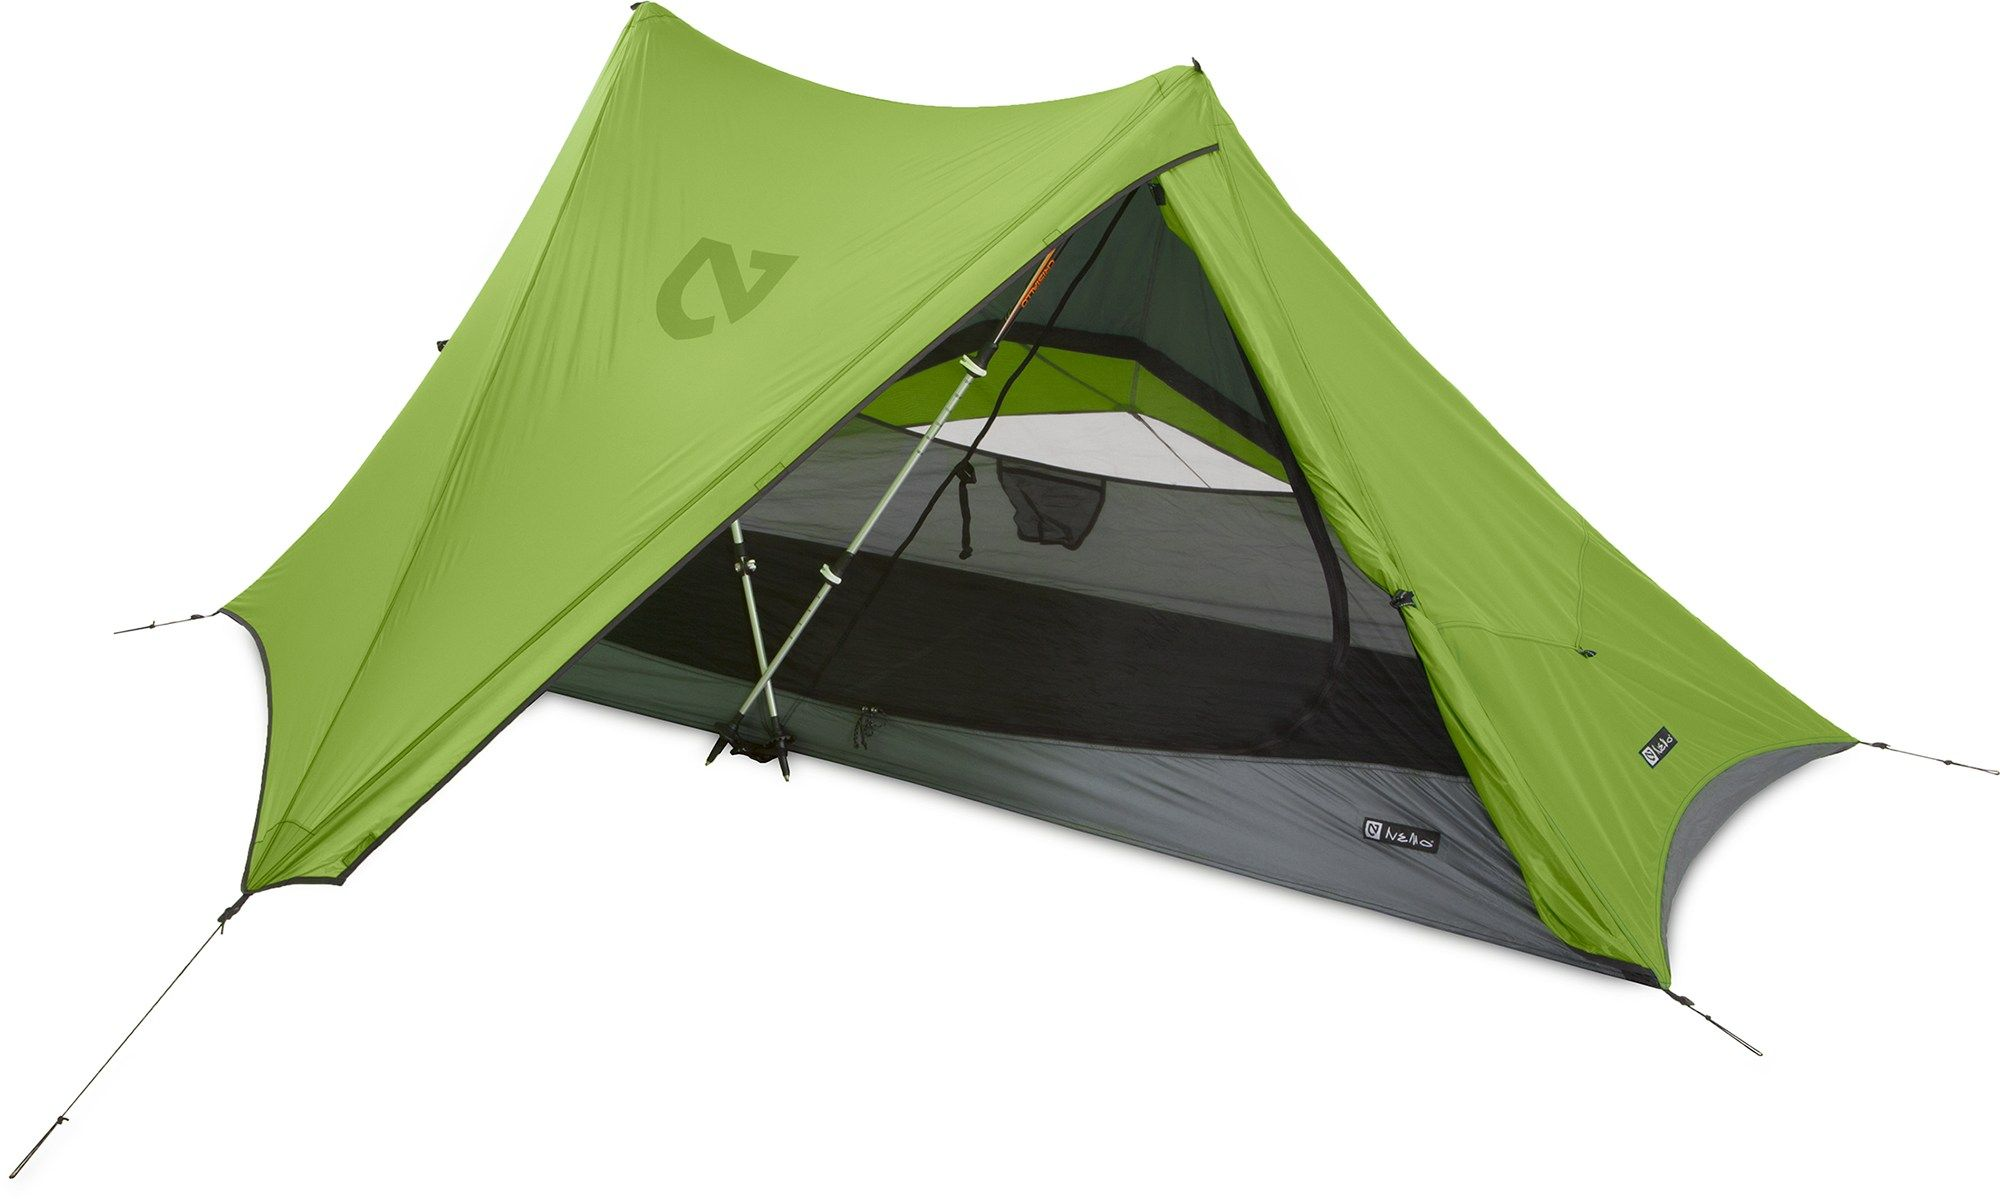 NEMO Veda 1P Tent uses trekking poles instead of additional tent poles to minimize weight  sc 1 st  Pinterest & NEMO Veda 1P Tent uses trekking poles instead of additional tent ...